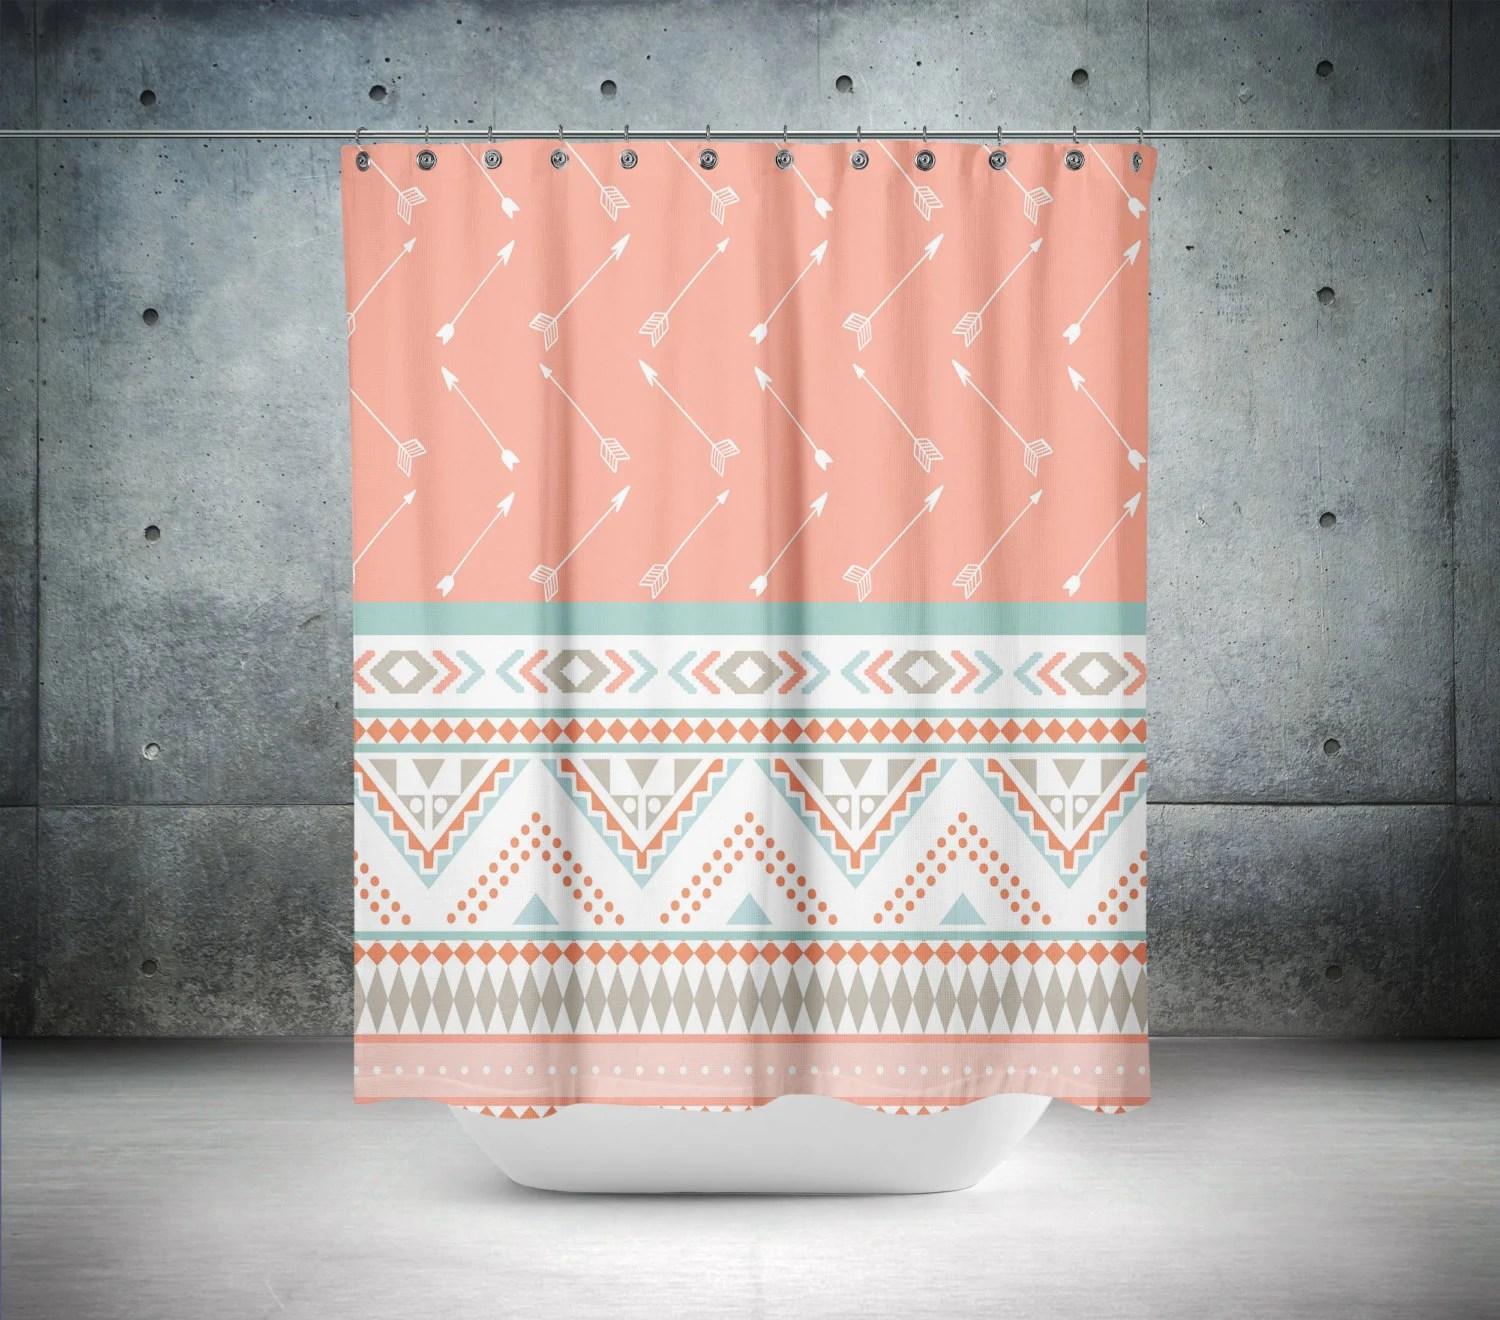 Octopus and Ship Shower Curtain Kraken Tatoo by FolkandFunky